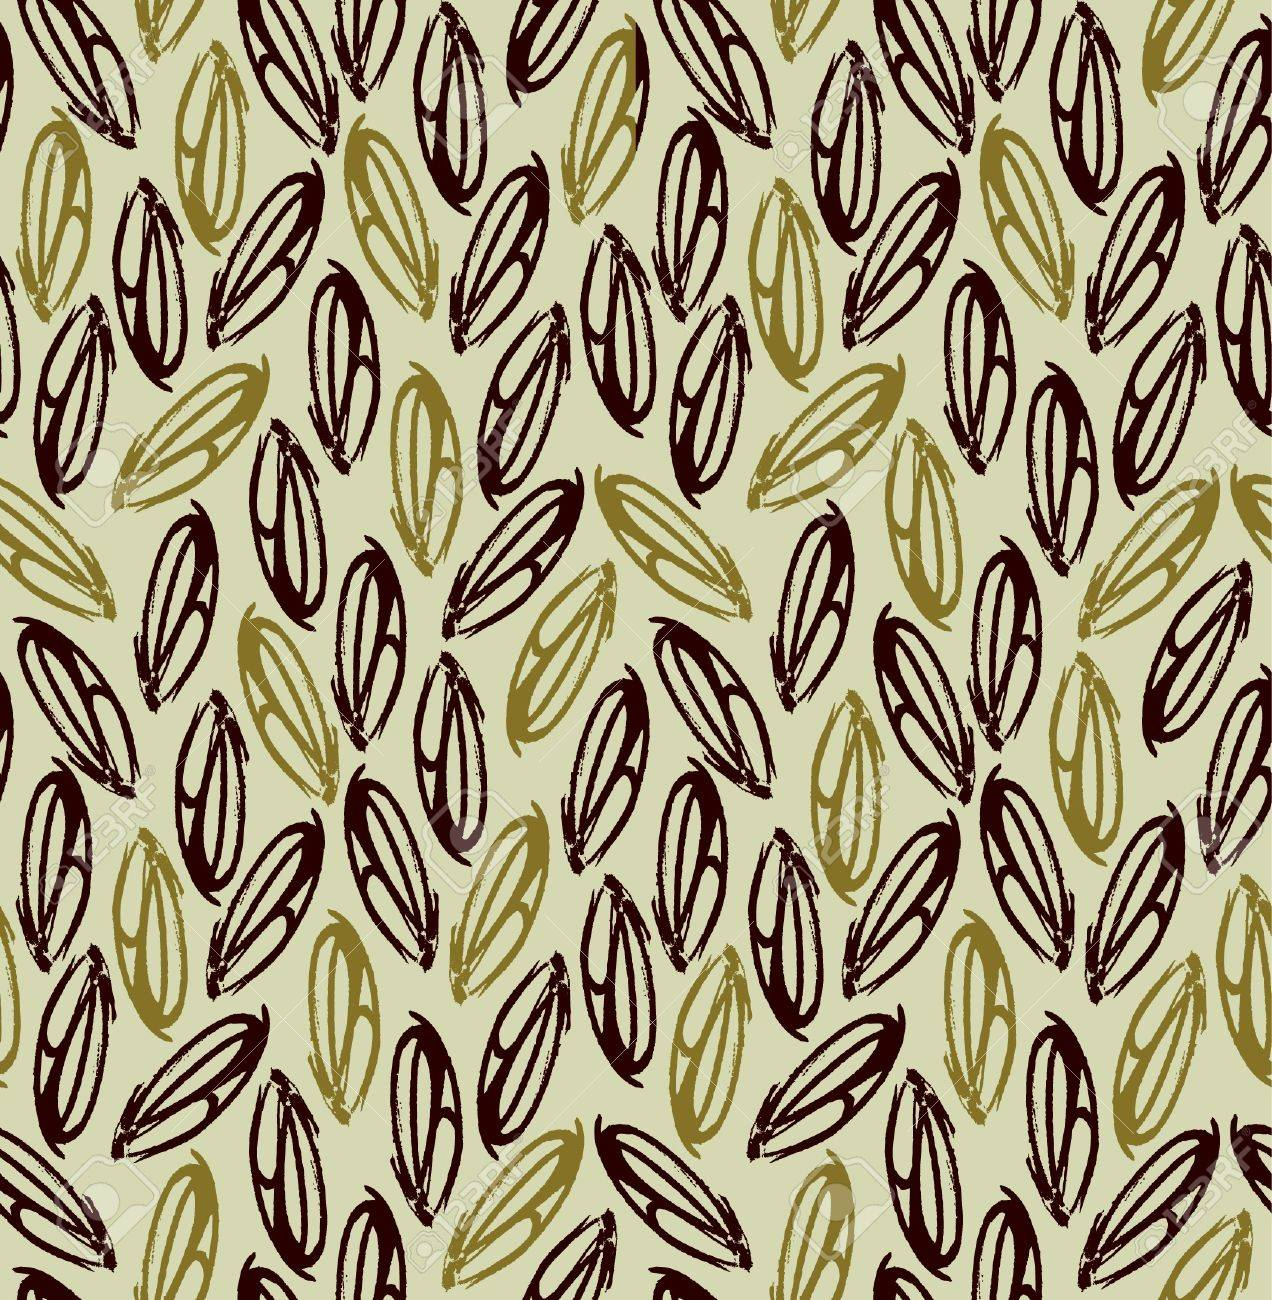 Decorative seamless golden pattern  Endless abstract beige texture with leaves  Template for design backgrounds, textile, package, wrapping paper Stock Vector - 18035880